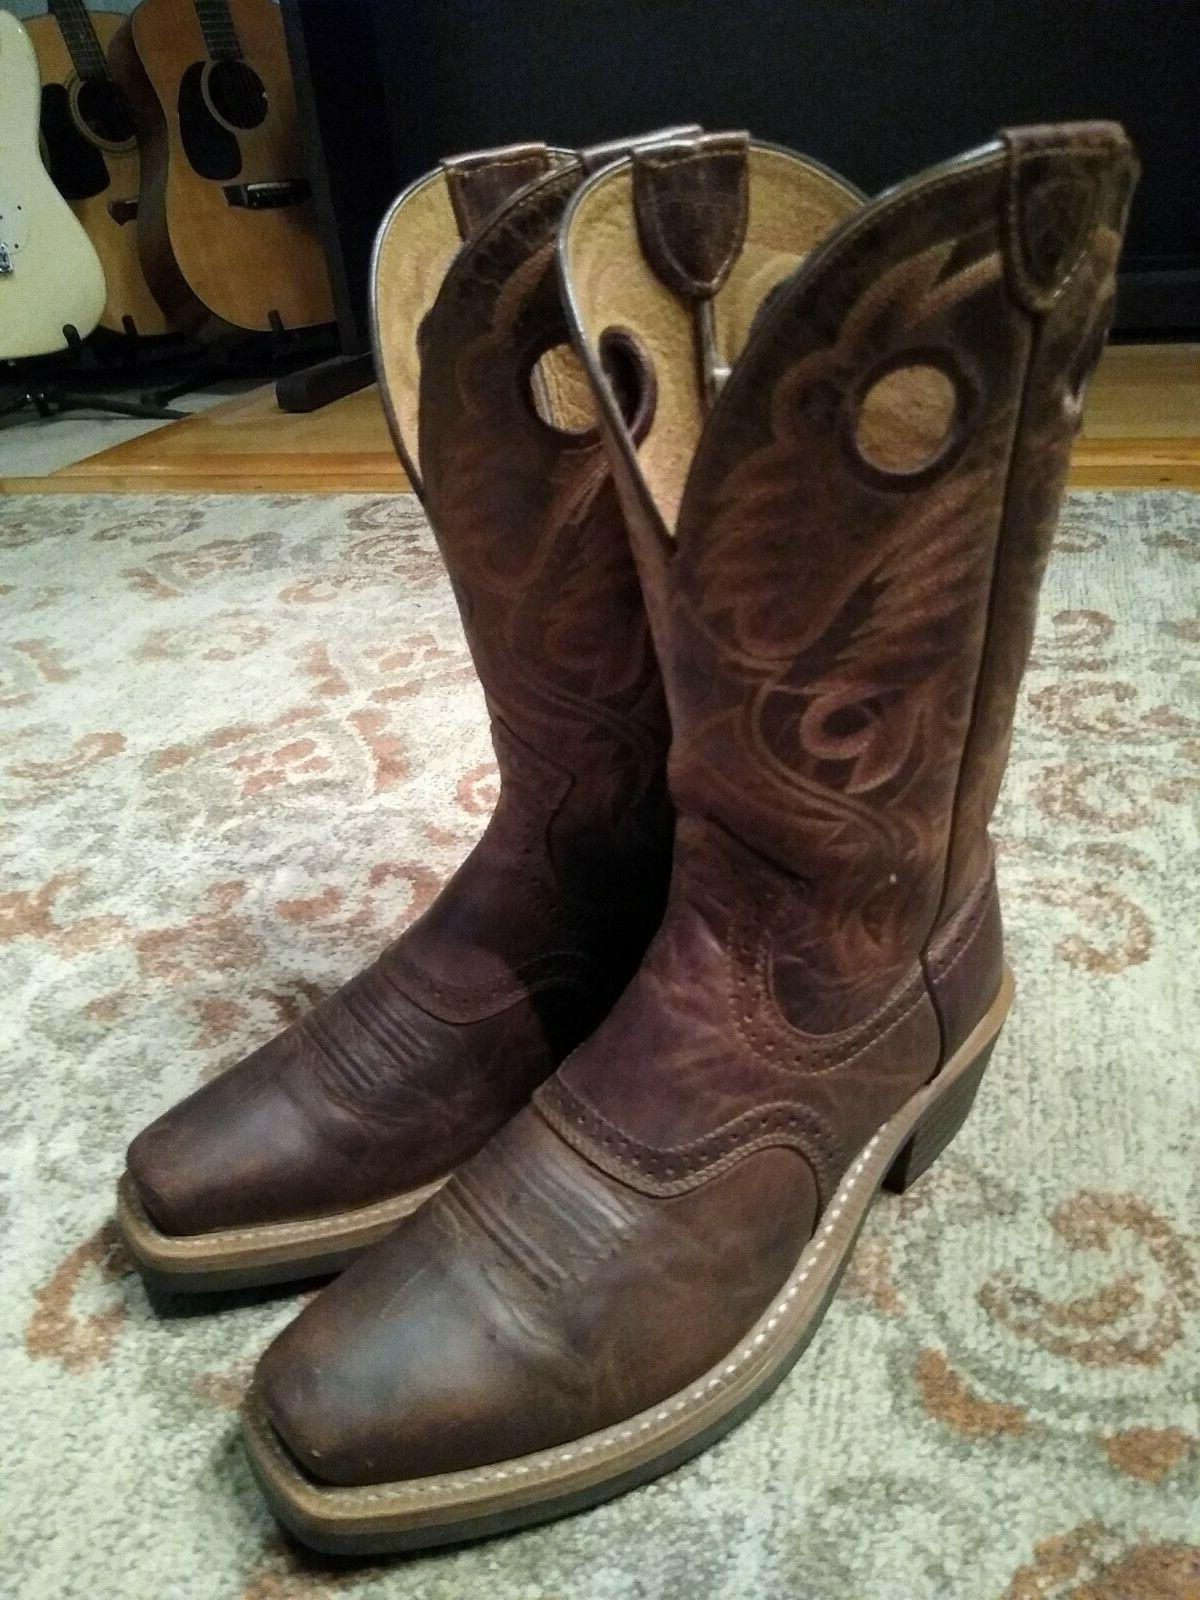 ARIAT HERITAGE BROWN LEATHER S COWBOY BOOTS 8.5